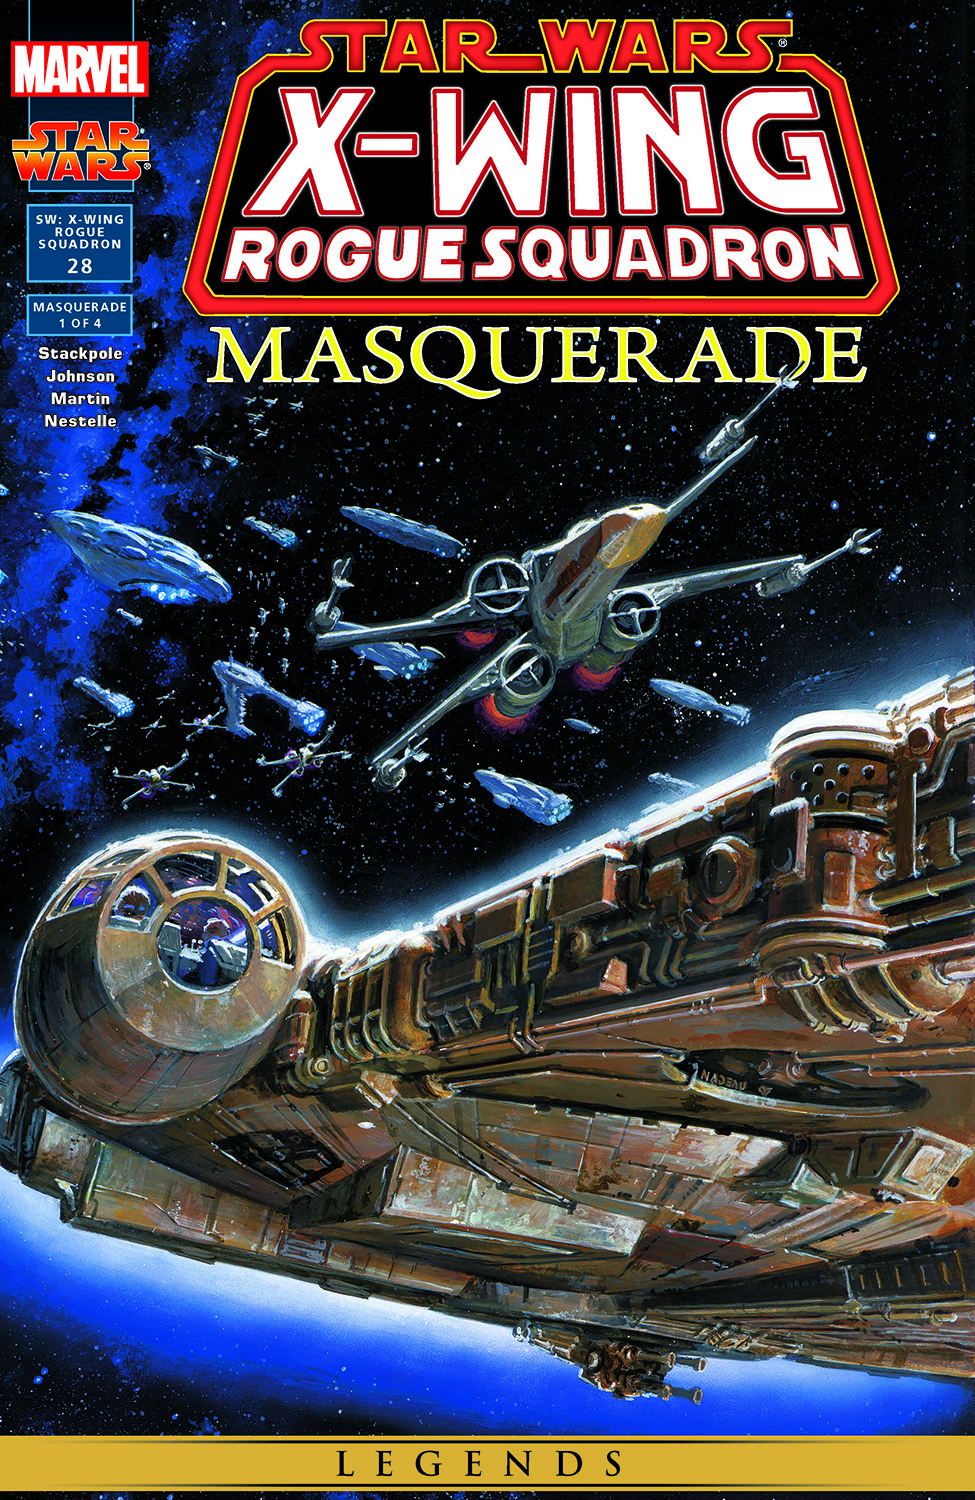 an analysis of star wars x wing rogue squadron a novel by michael a stackpole Rogue squadron (1996) is the first novel in the star wars: x-wing series it was written by michael a stackpole it is set at the beginning of the new republic era of the star wars universe and centers on the creation of a new rogue squadron by legendary rebel alliance pilot wedge antilles.